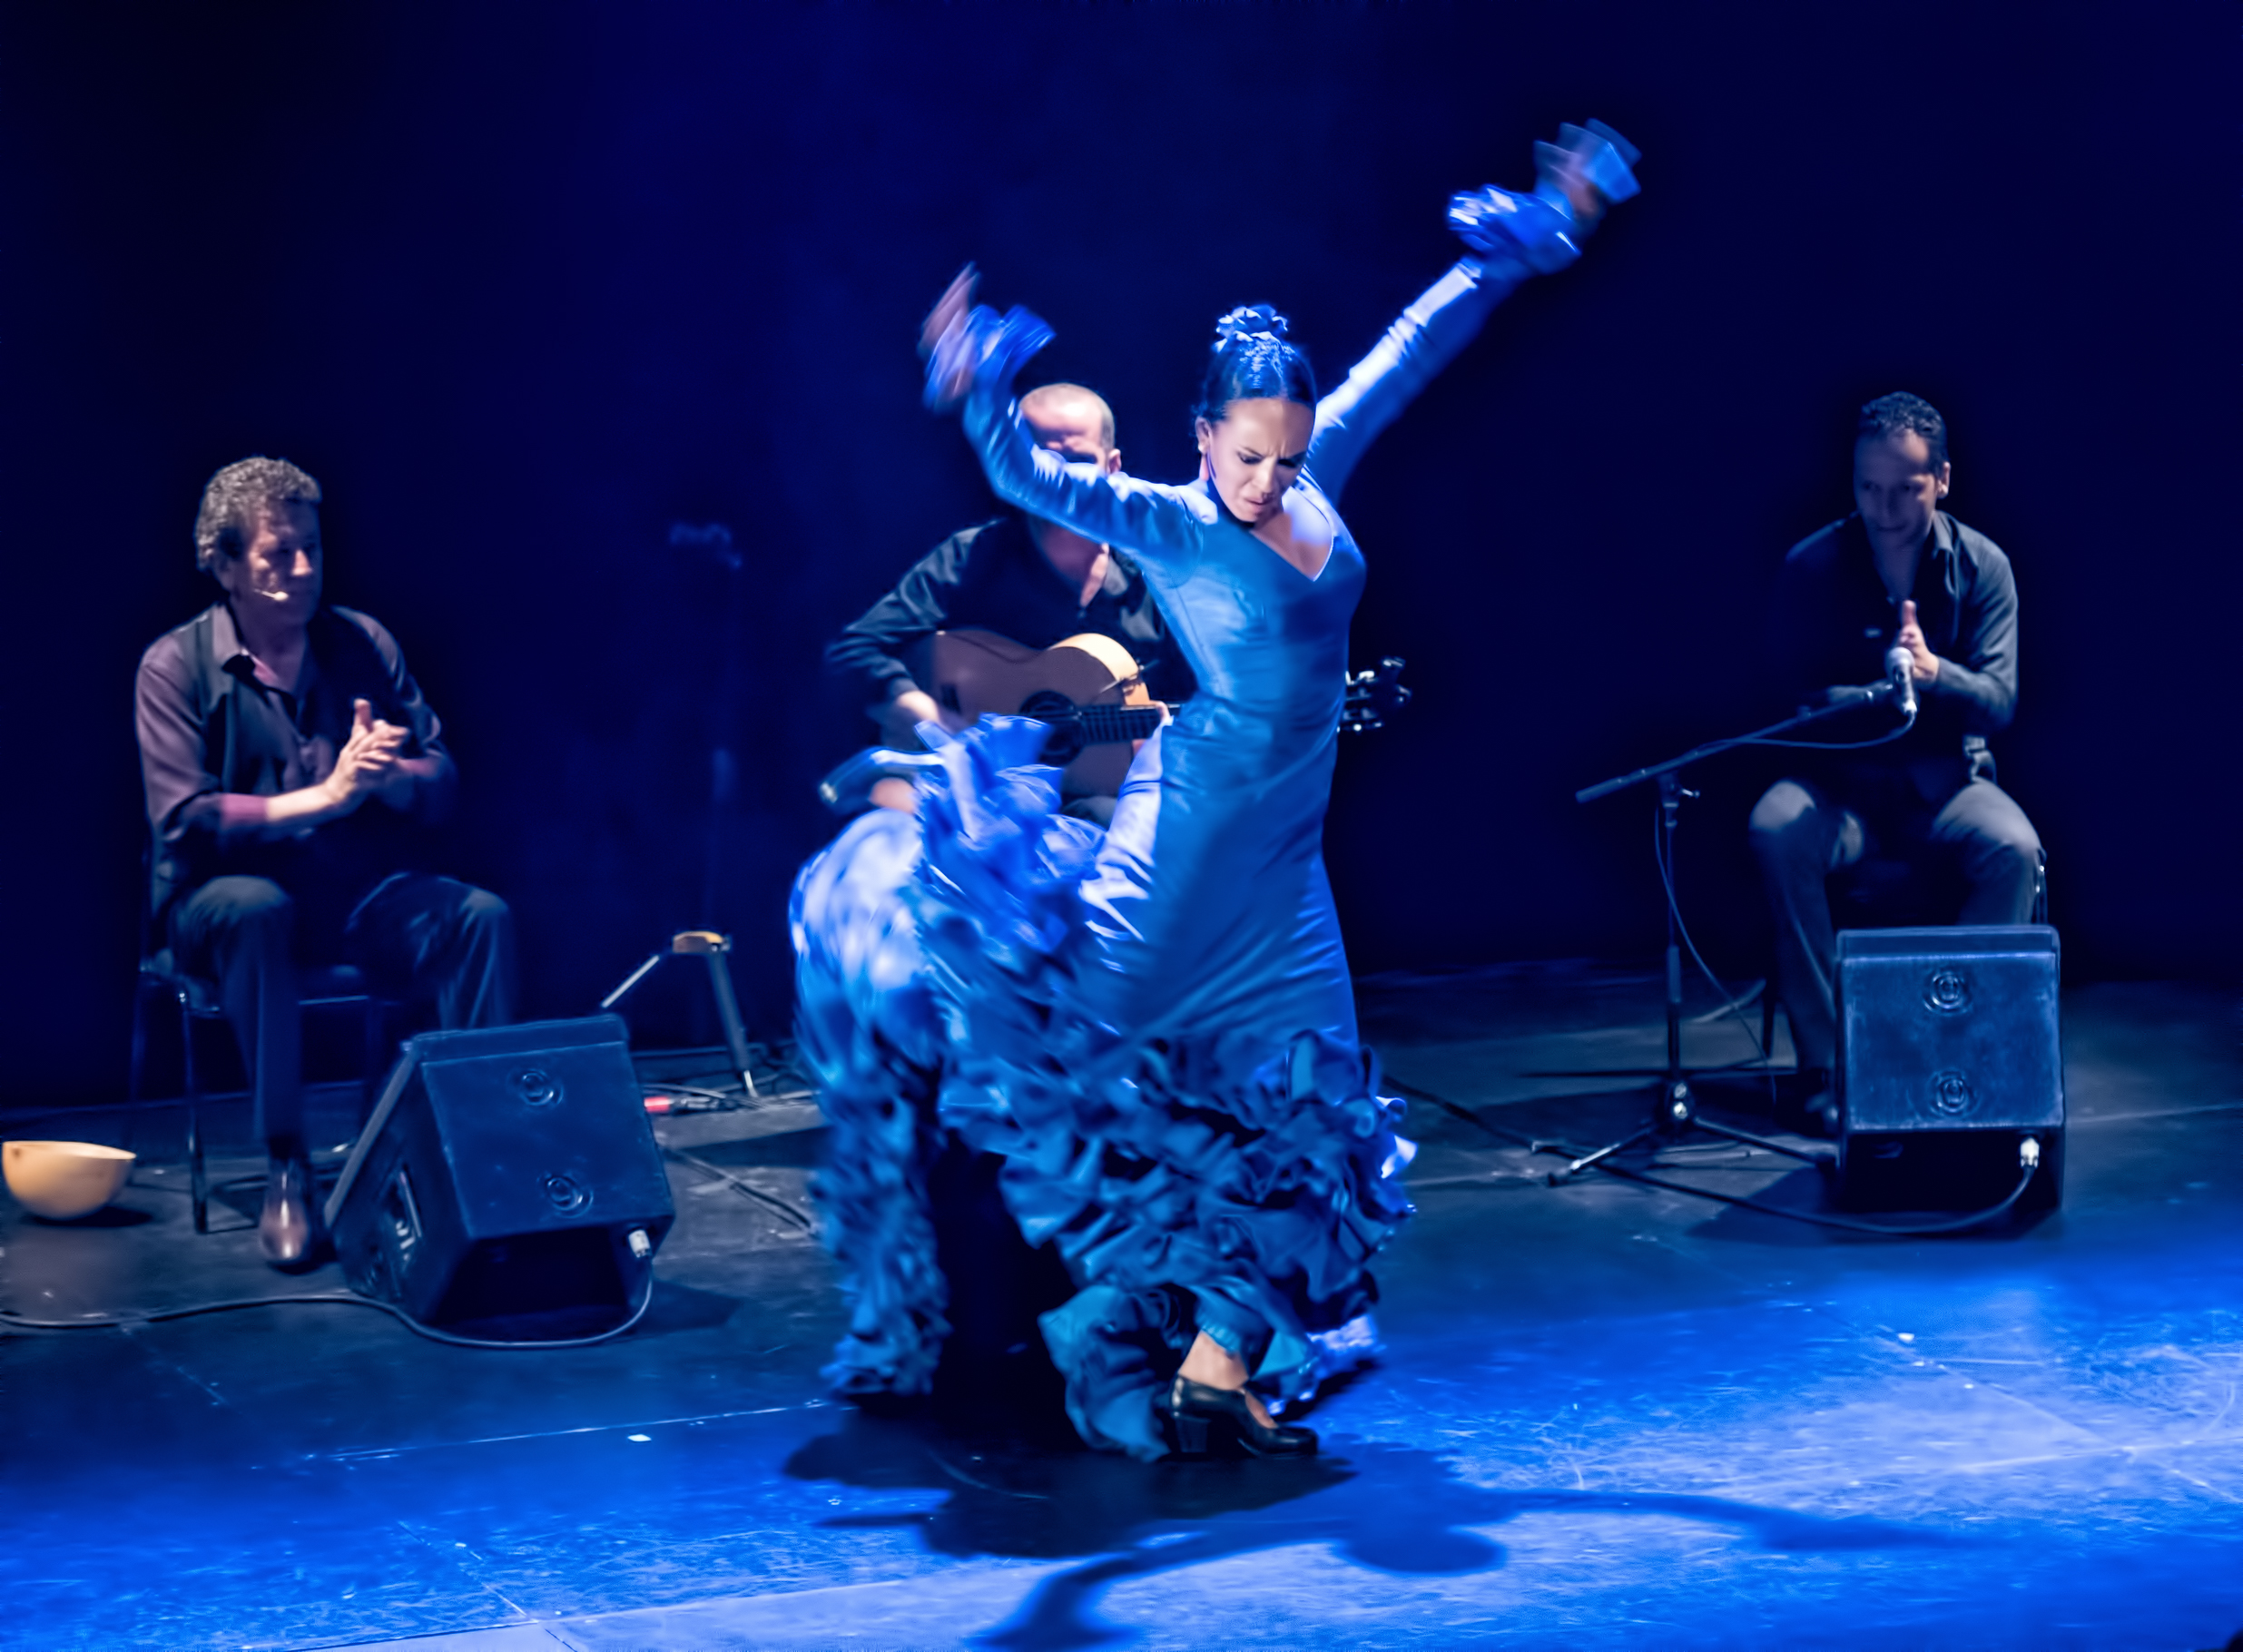 Ana Perez with Flamenco Vivo at the Montreal International Jazz Festival 2015